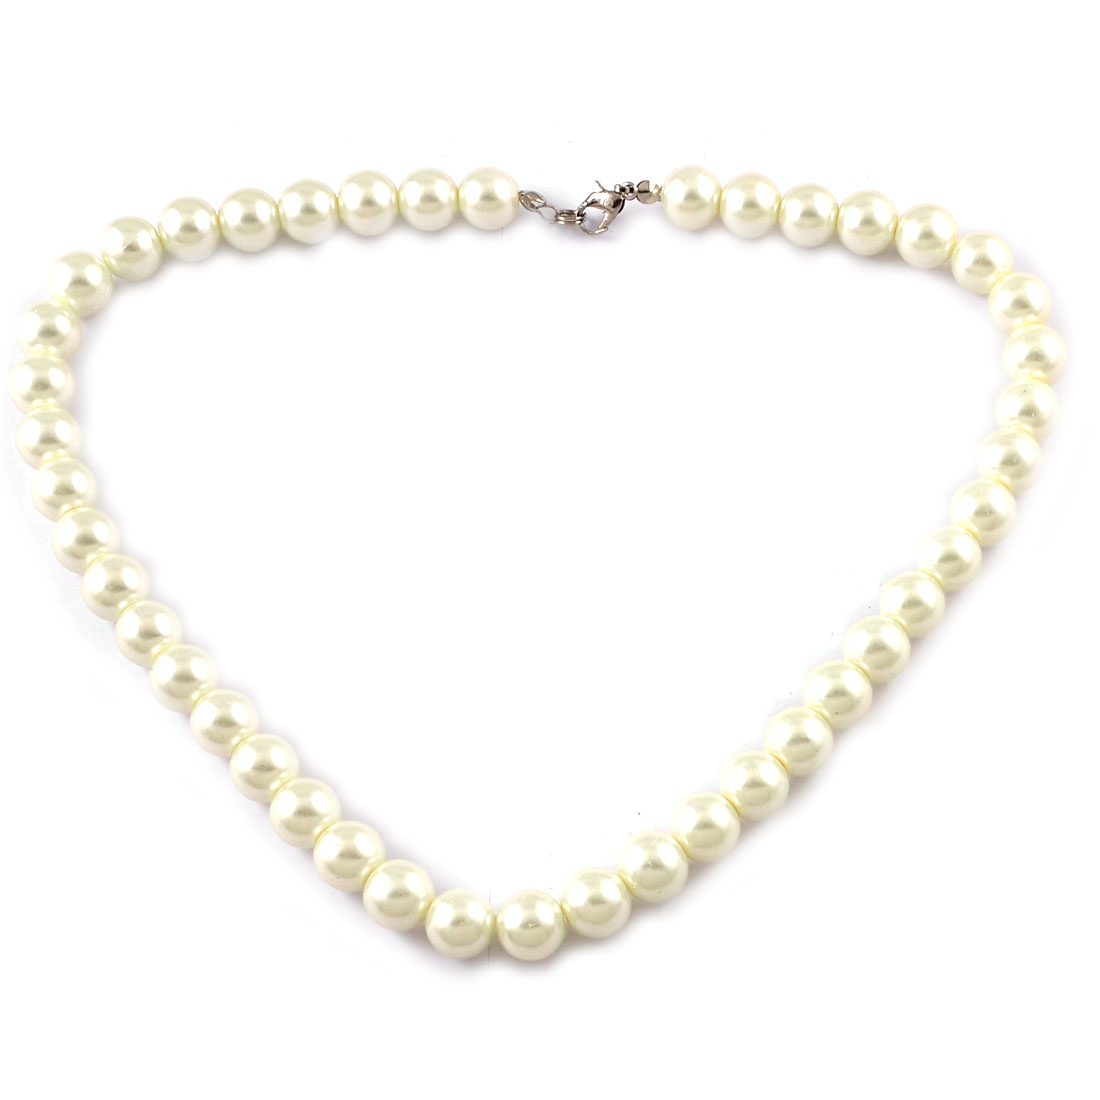 Off White Plastic Pearls Beaded Necklace Ideal Gift for Woman